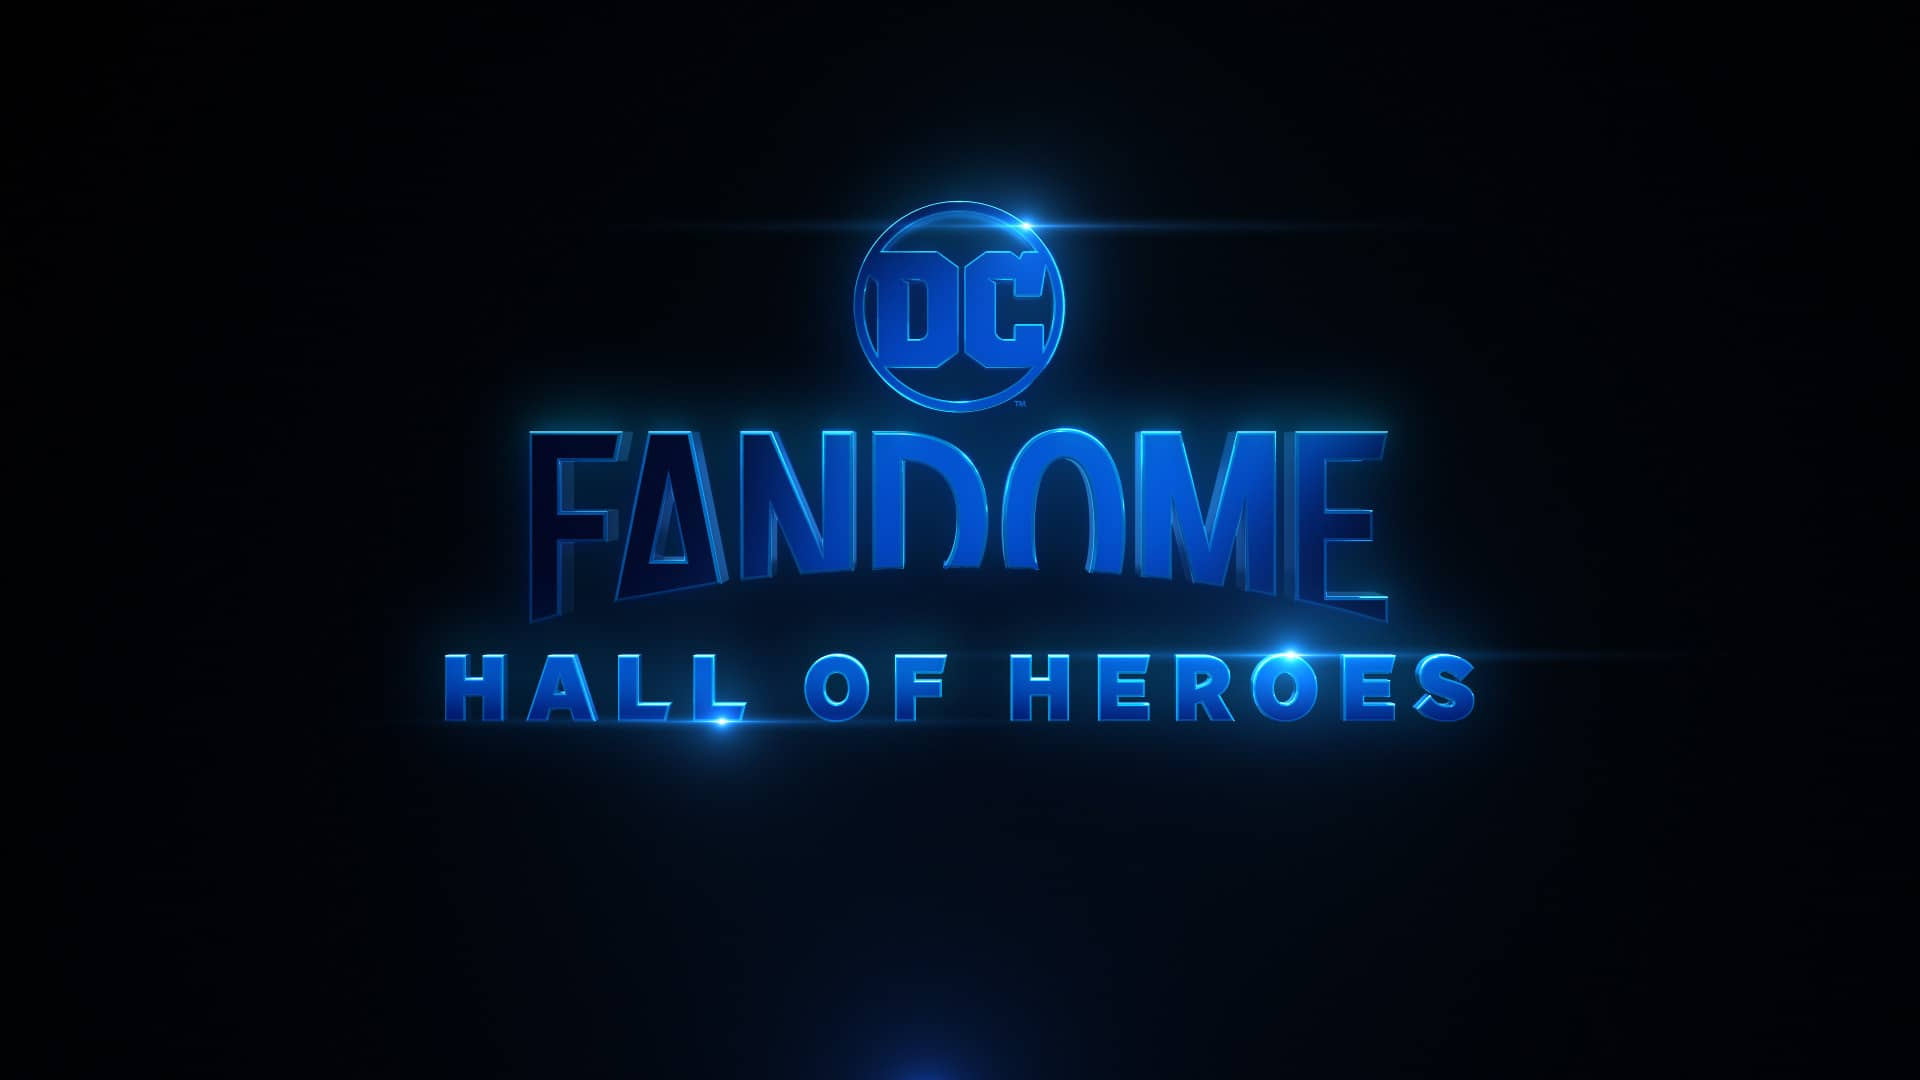 DC Fandome Hall Of Heroes Logo